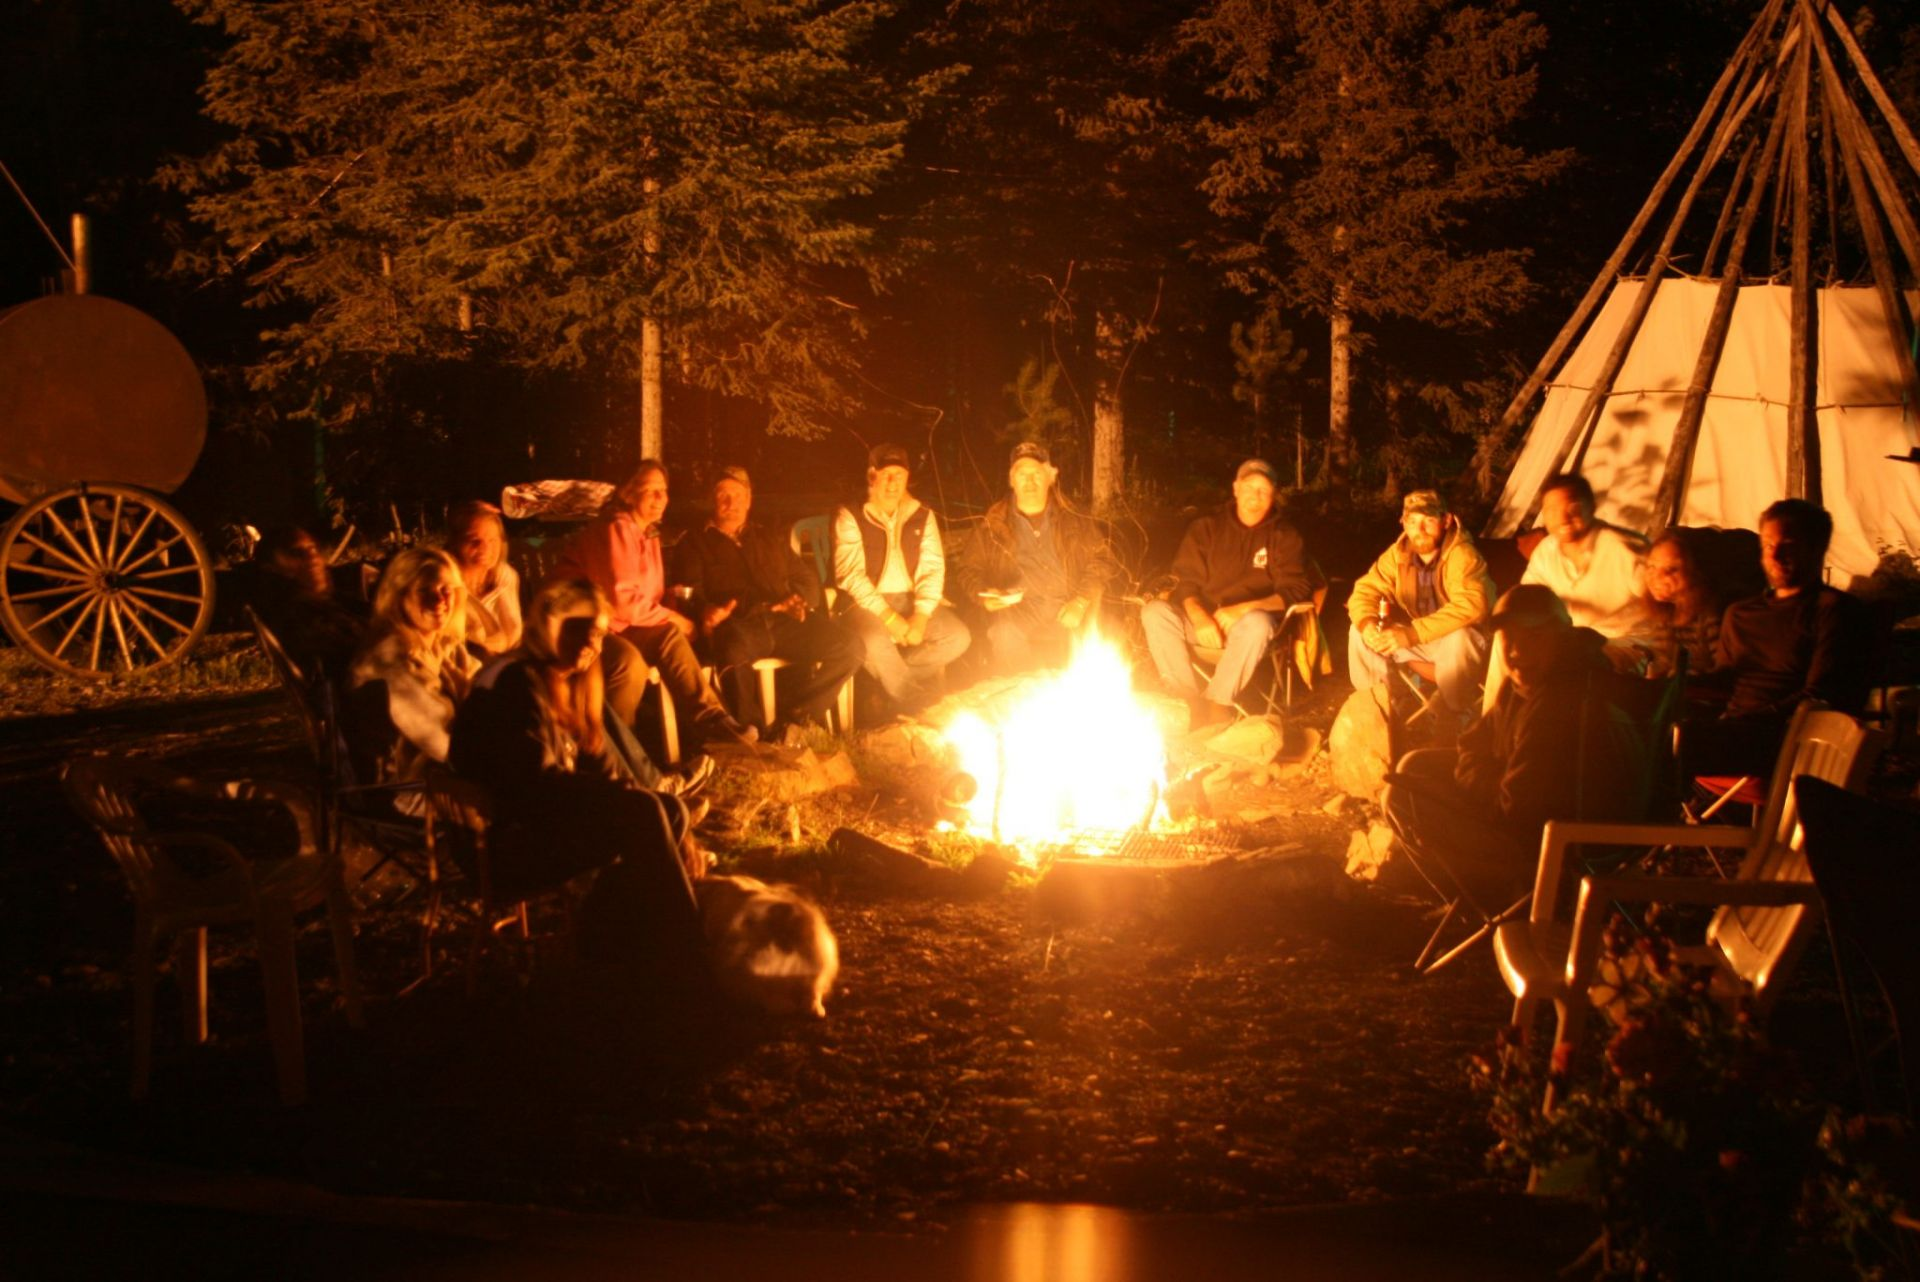 Campfire - In the evening we will have a campfire for contemplation, meditation, storytelling, and socializing. If you have an instrument and know some songs to sing along to, please bring it...!